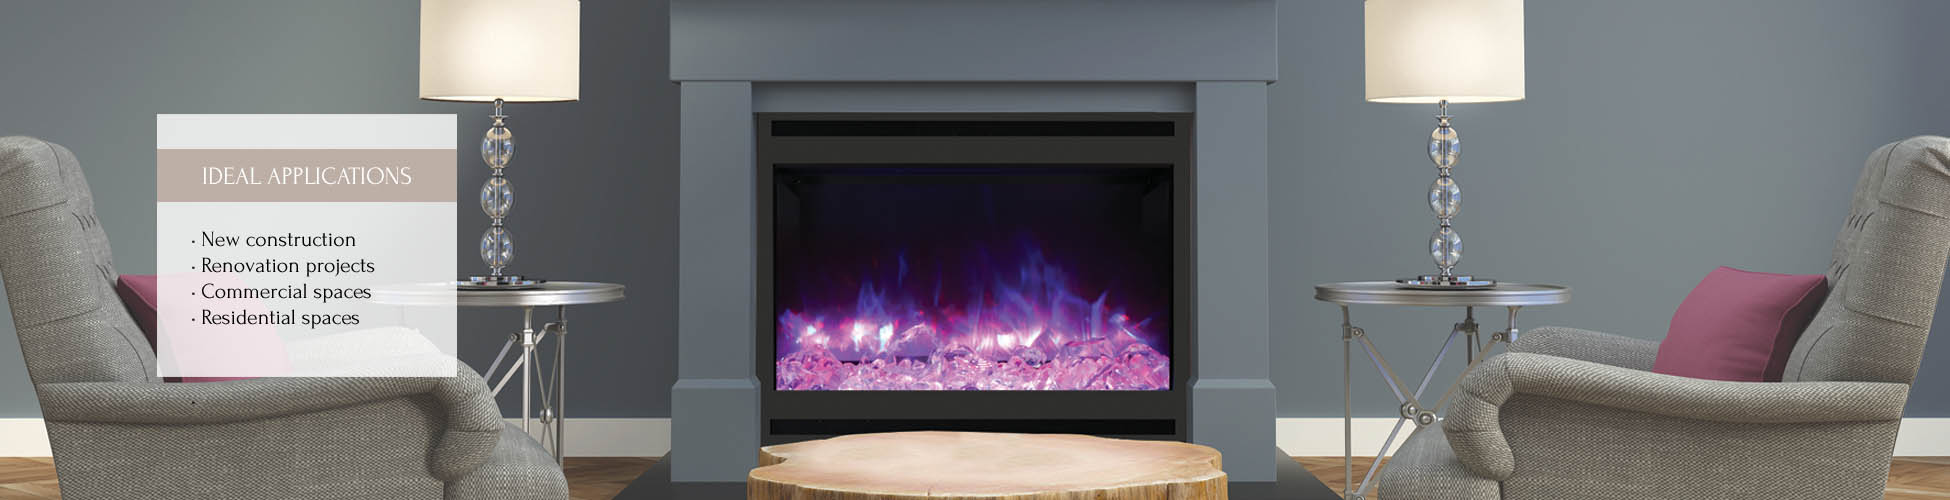 ZECL-31-3228-STL-SQR electric fireplace by Amantii